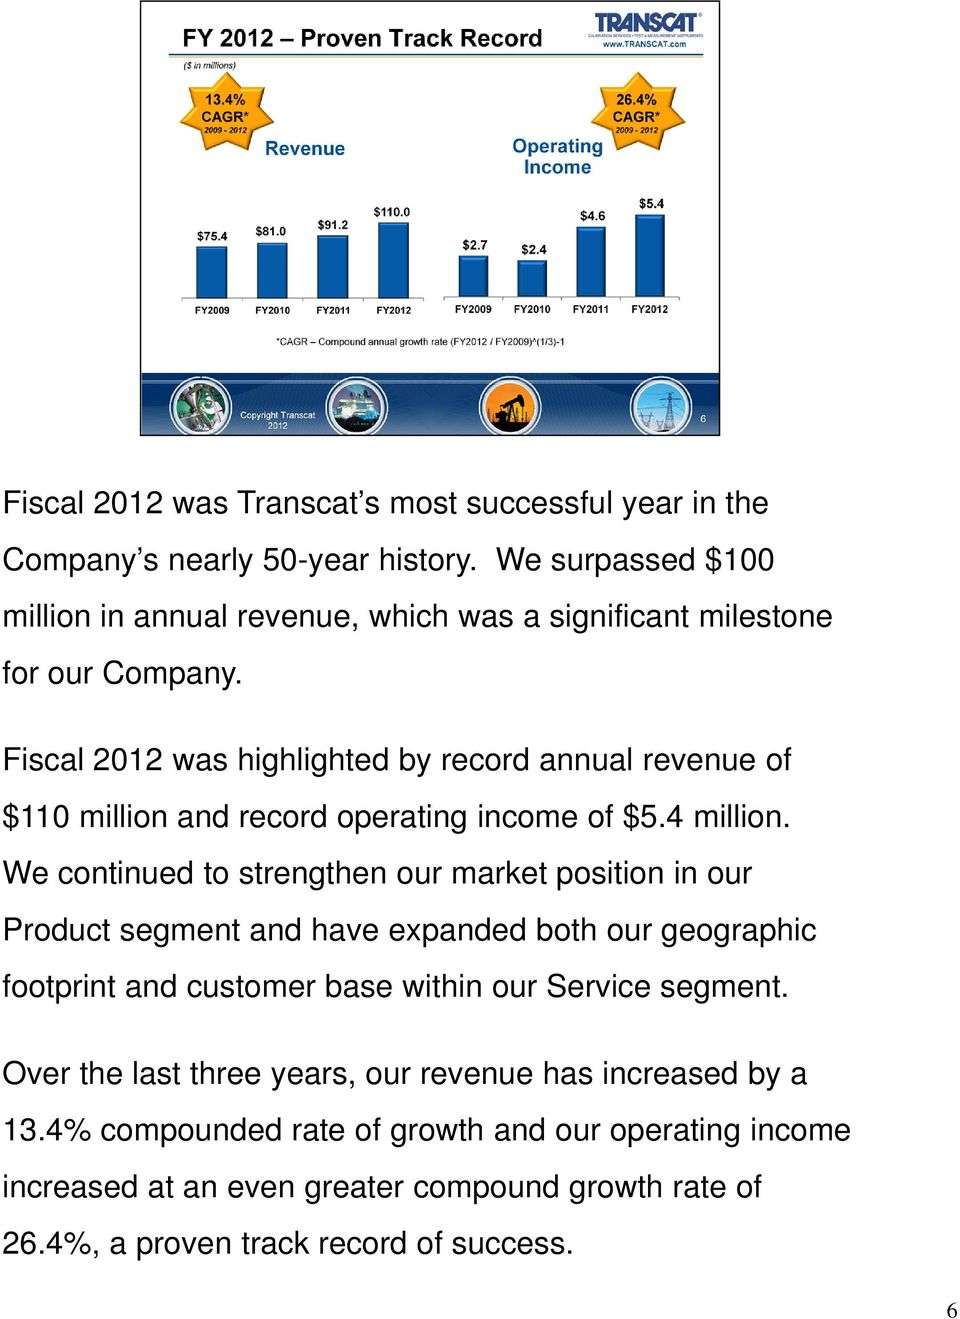 Fiscal 2012 was highlighted by record annual revenue of $110 million and record operating income of $5.4 million.